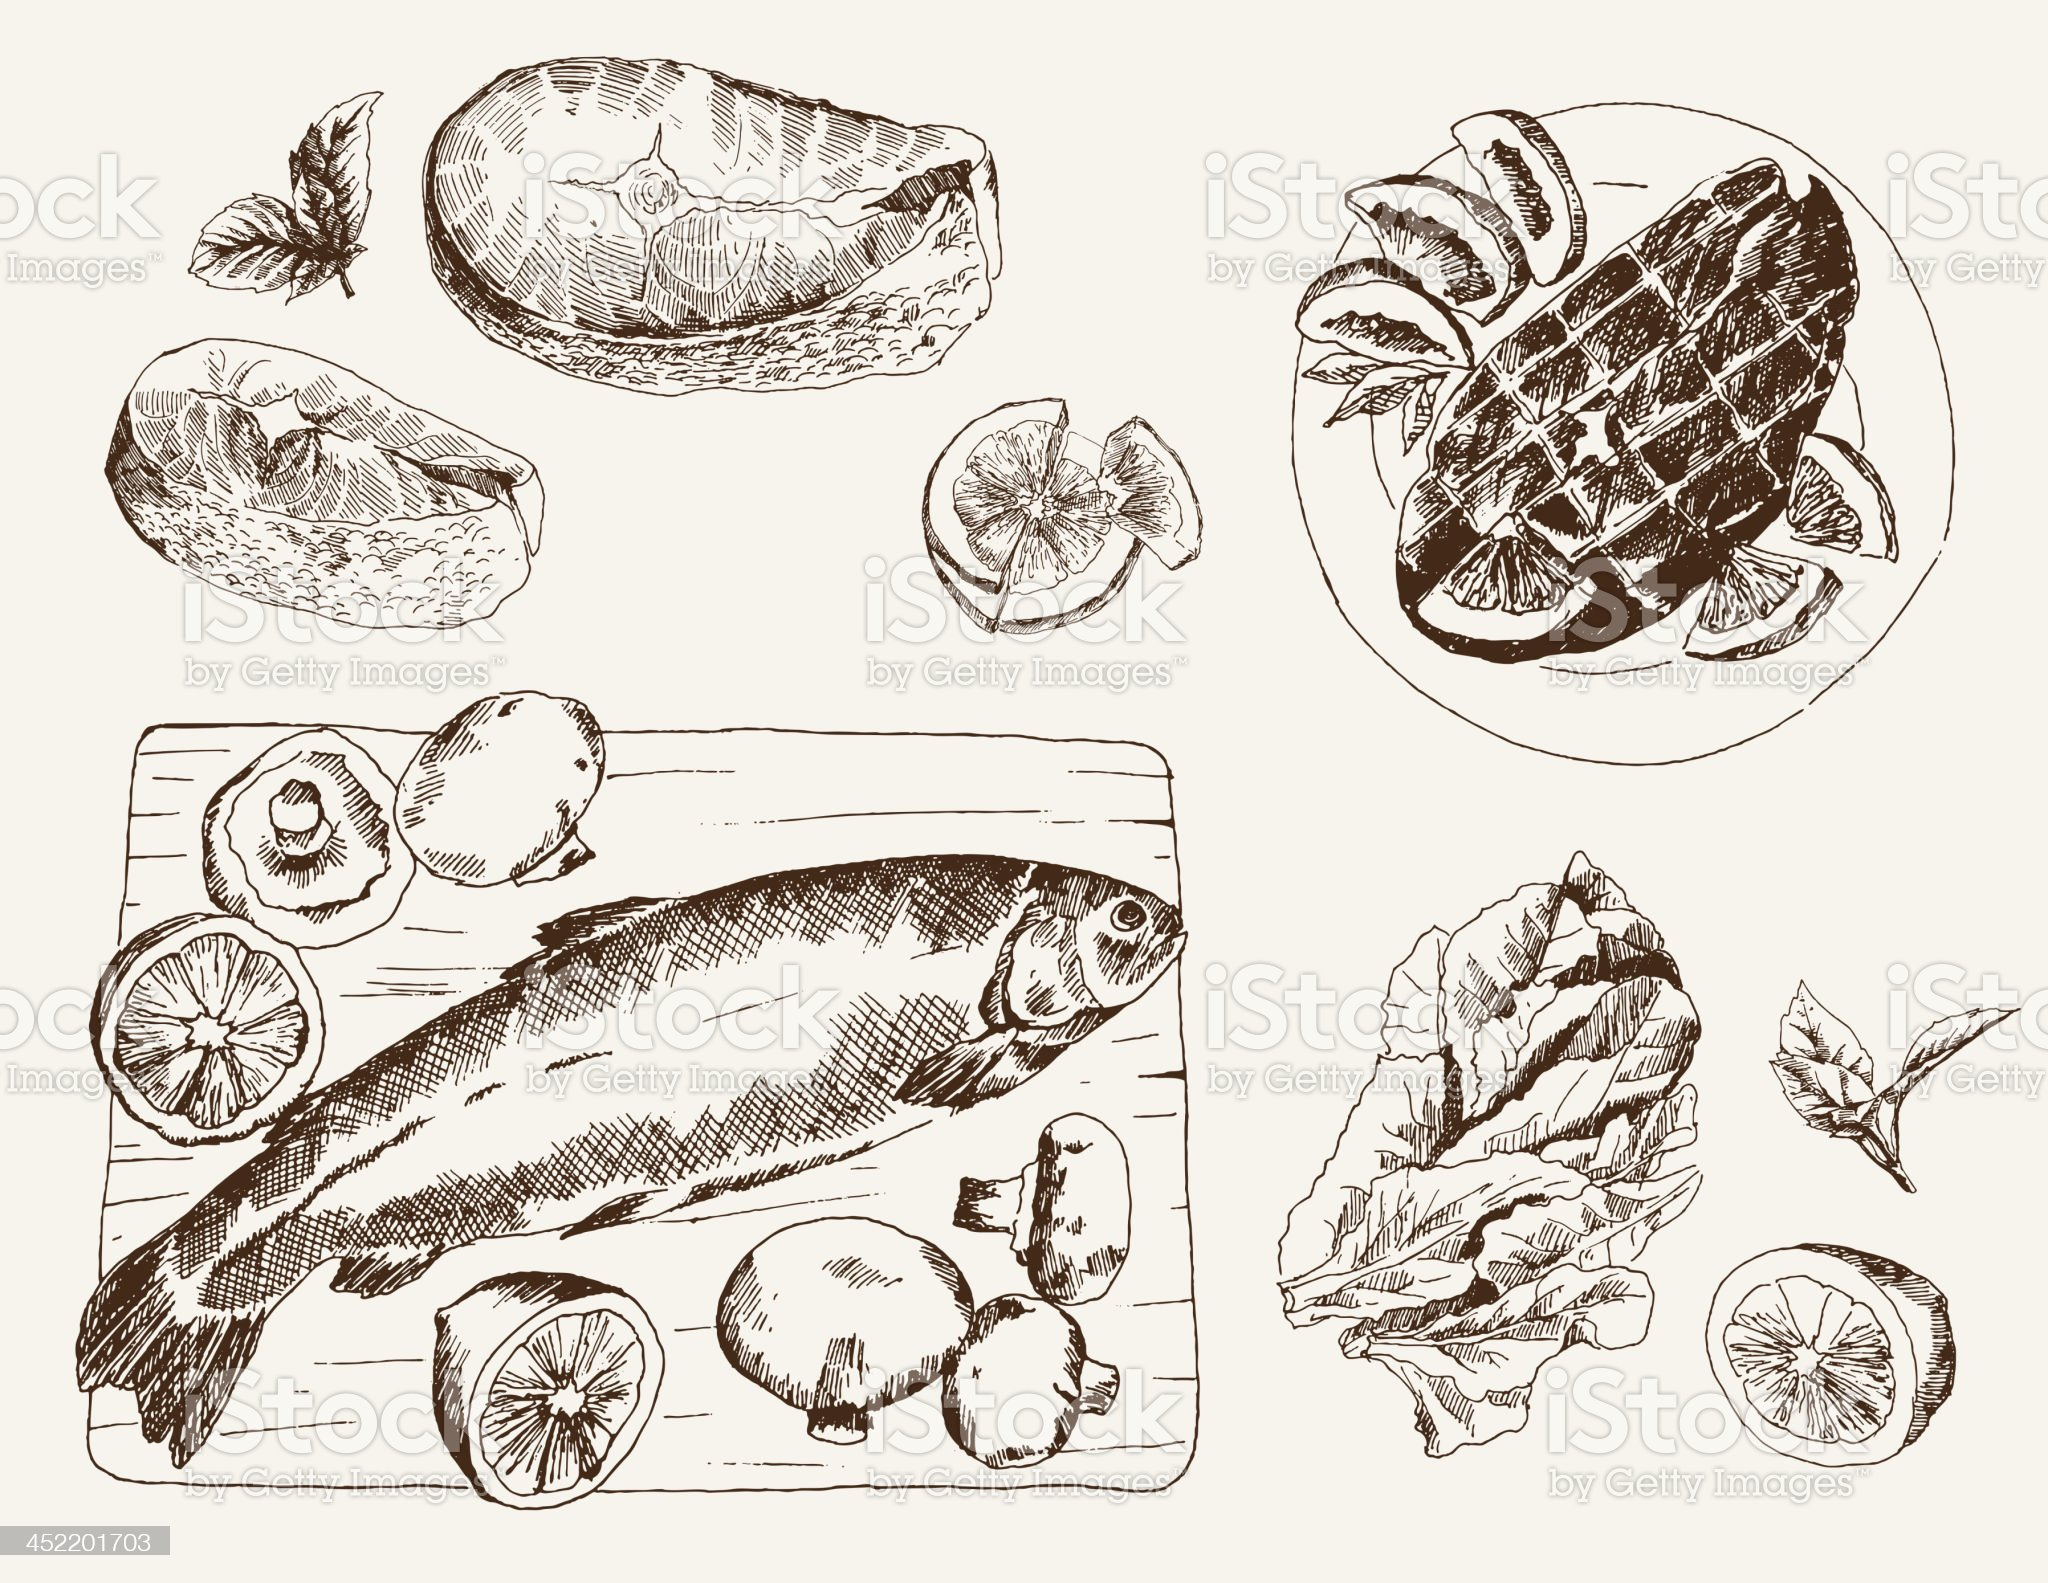 Washed ink drawings of fish related dishes royalty-free stock vector art